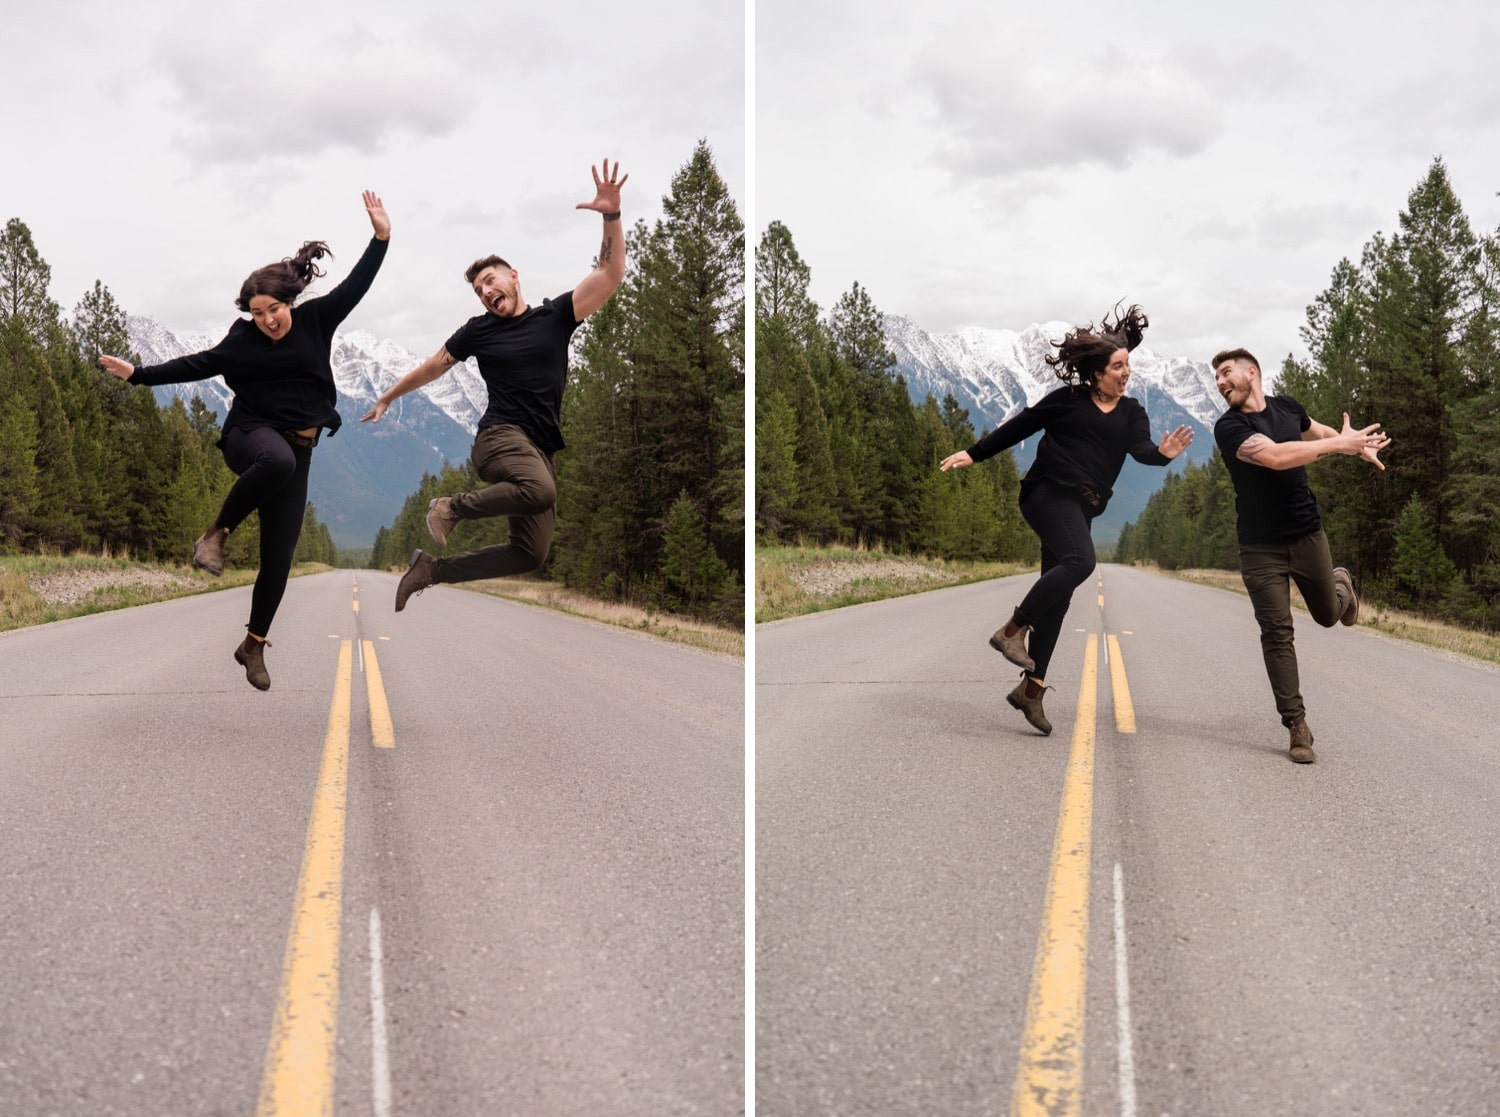 Playful couple jumps for the camera, laughing together during their engagement photography session.